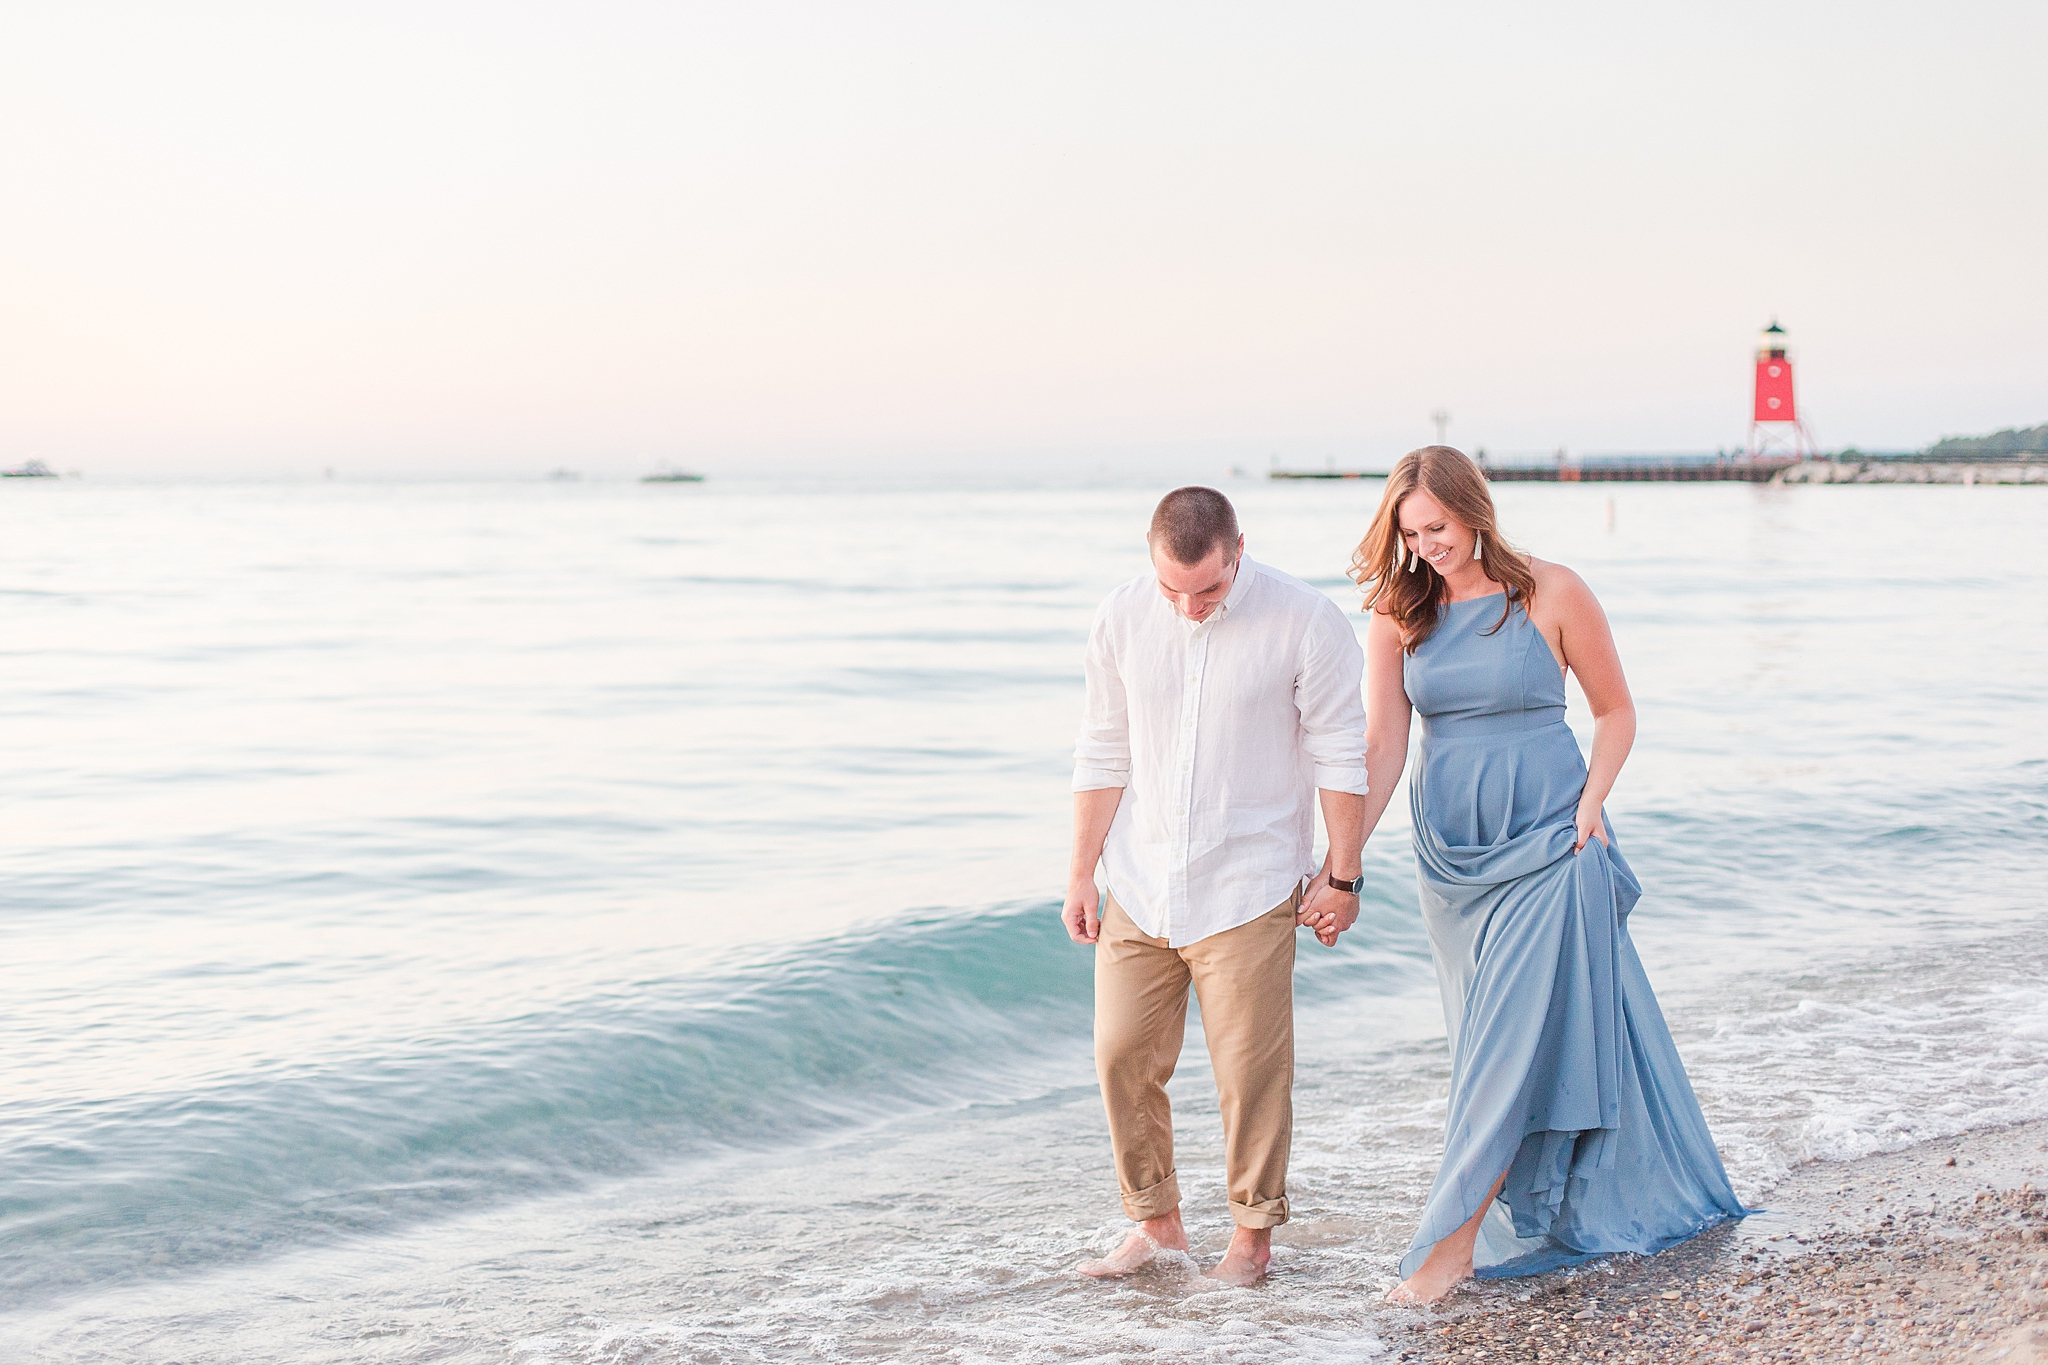 waterfront-lighthouse-engagement-photography-in-charlevoix-mi-by-courtney-carolyn-photography_0018.jpg